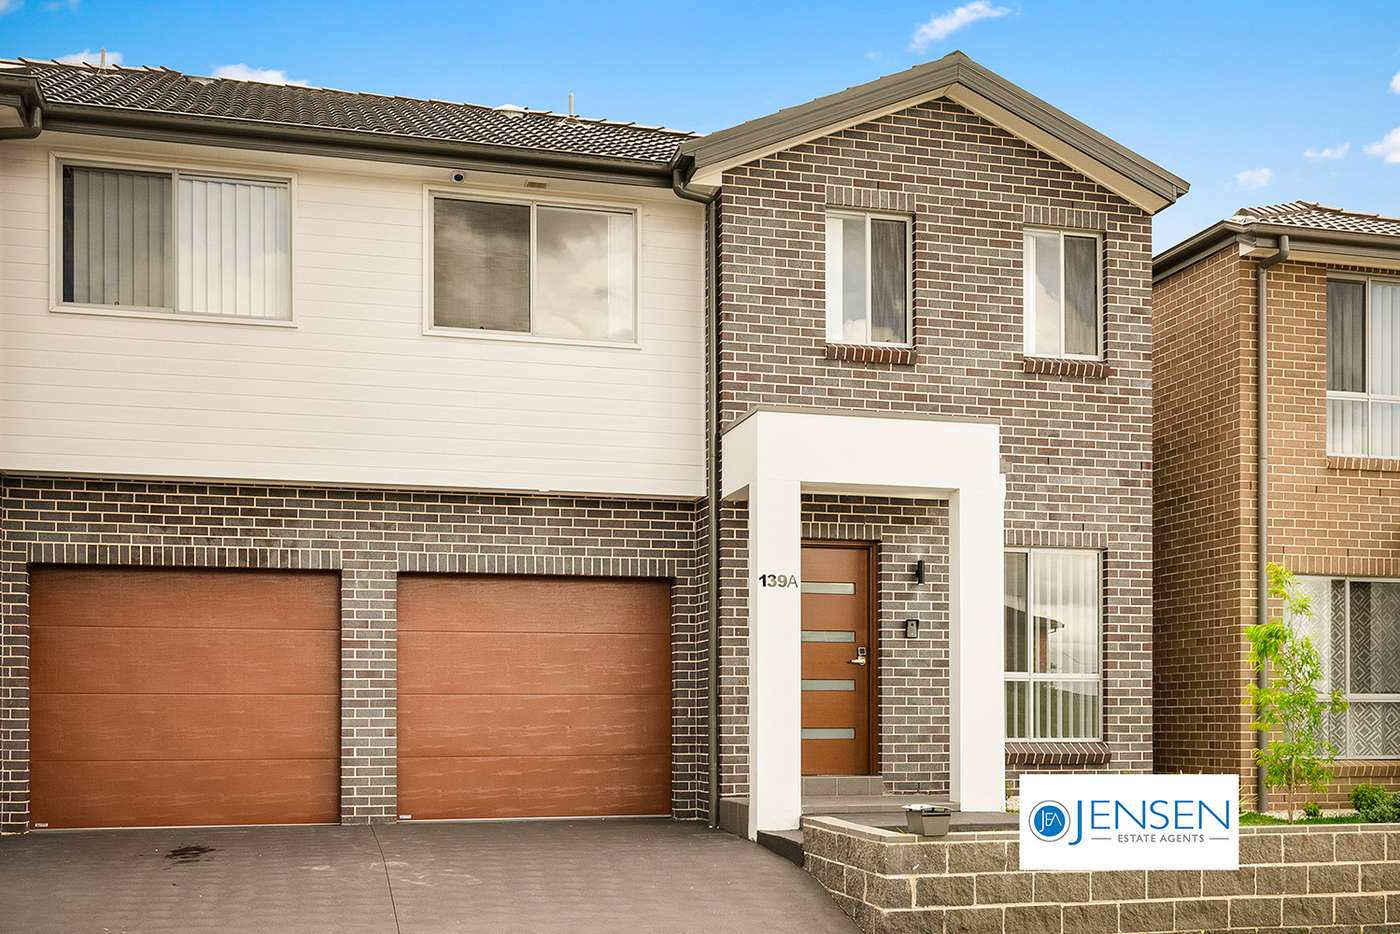 Main view of Homely house listing, 139A Kensington Park Road, Riverstone NSW 2765